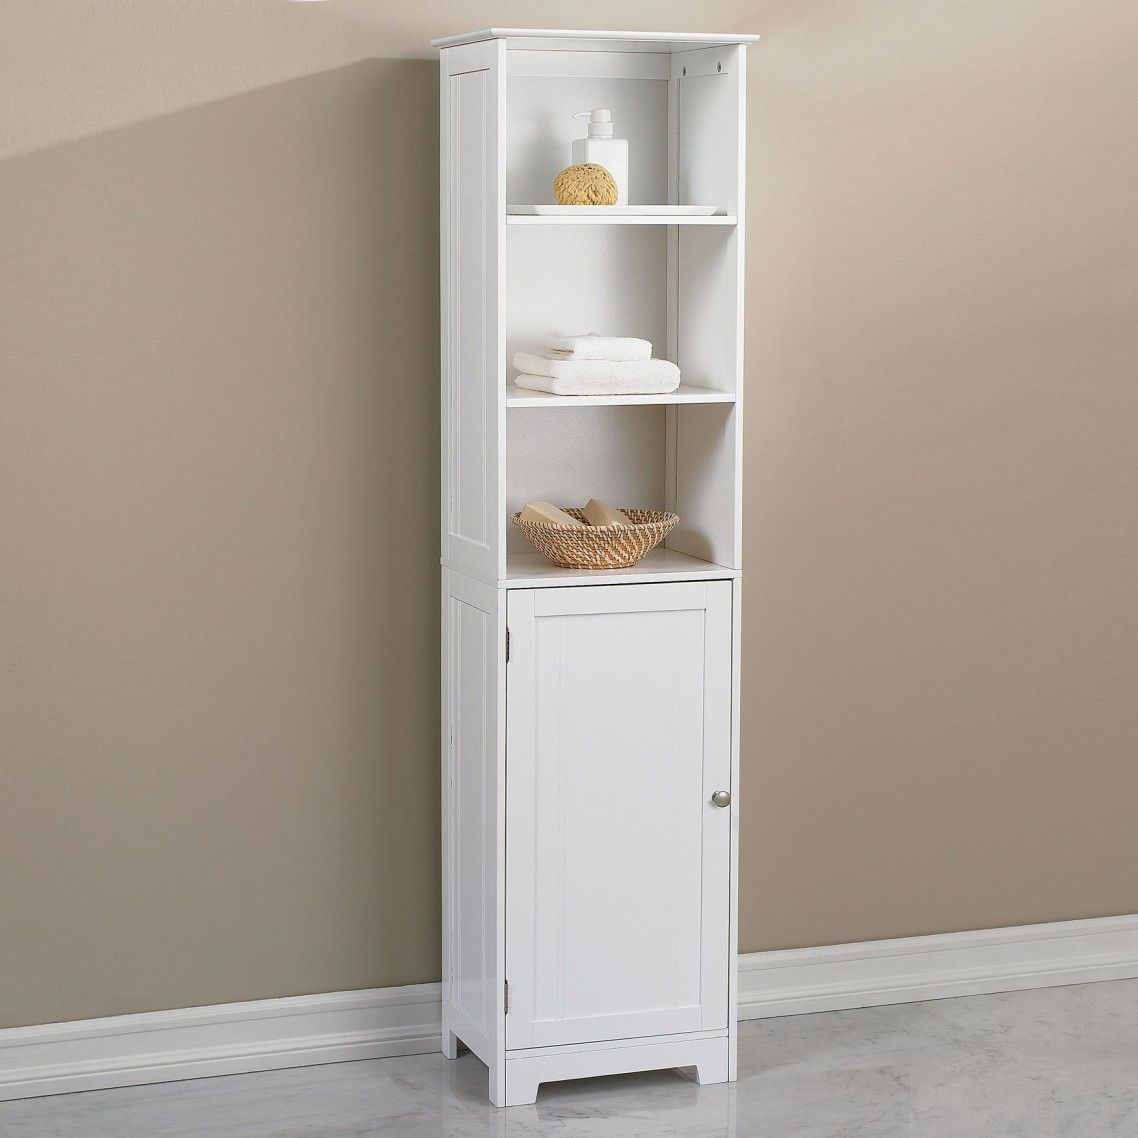 Free standing bathroom storage cabinets - Bathroom Standing Cabinets Wood Ierie